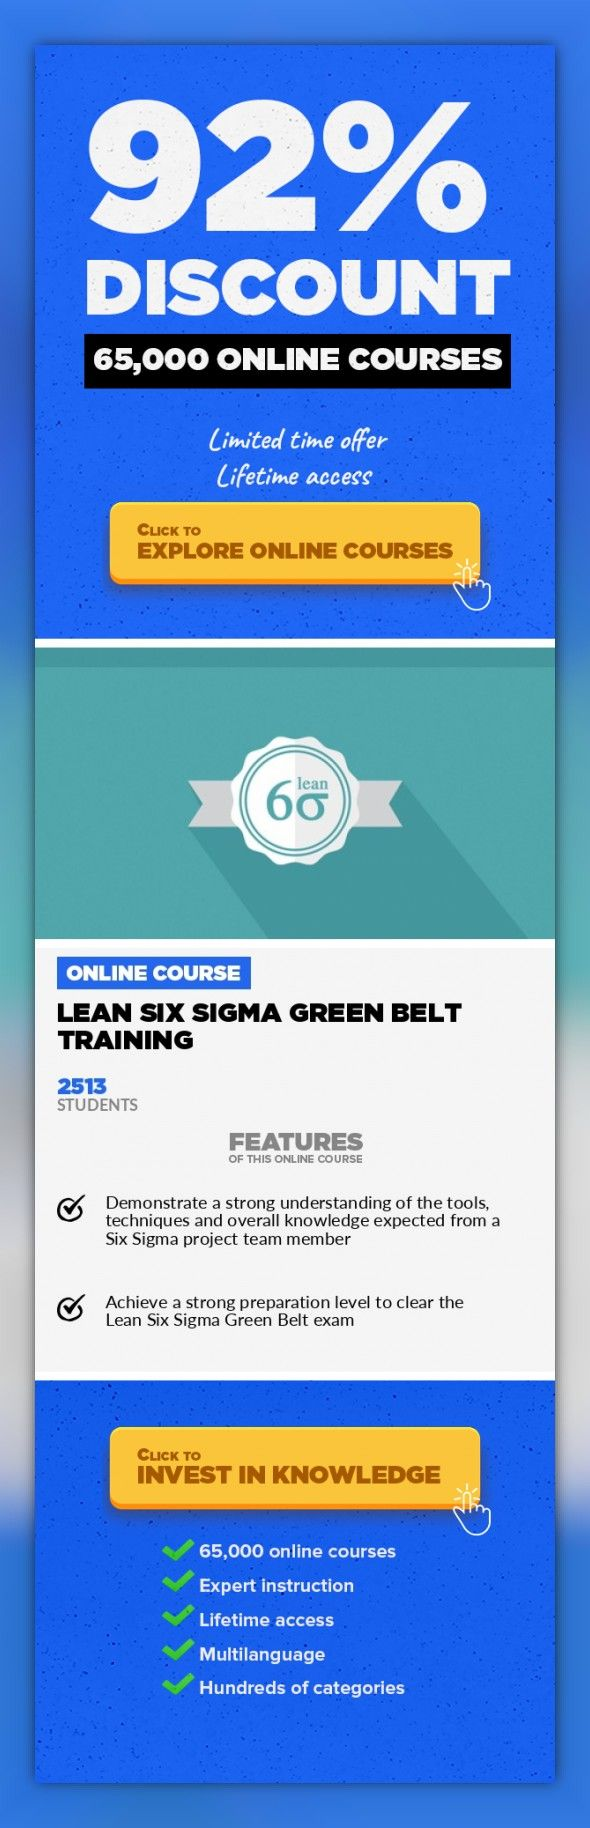 Vskills certification for six sigma green belt professional vskills certification for six sigma green belt professional assesses the candidate as per the companys need for deploying managing and maintain 1betcityfo Image collections